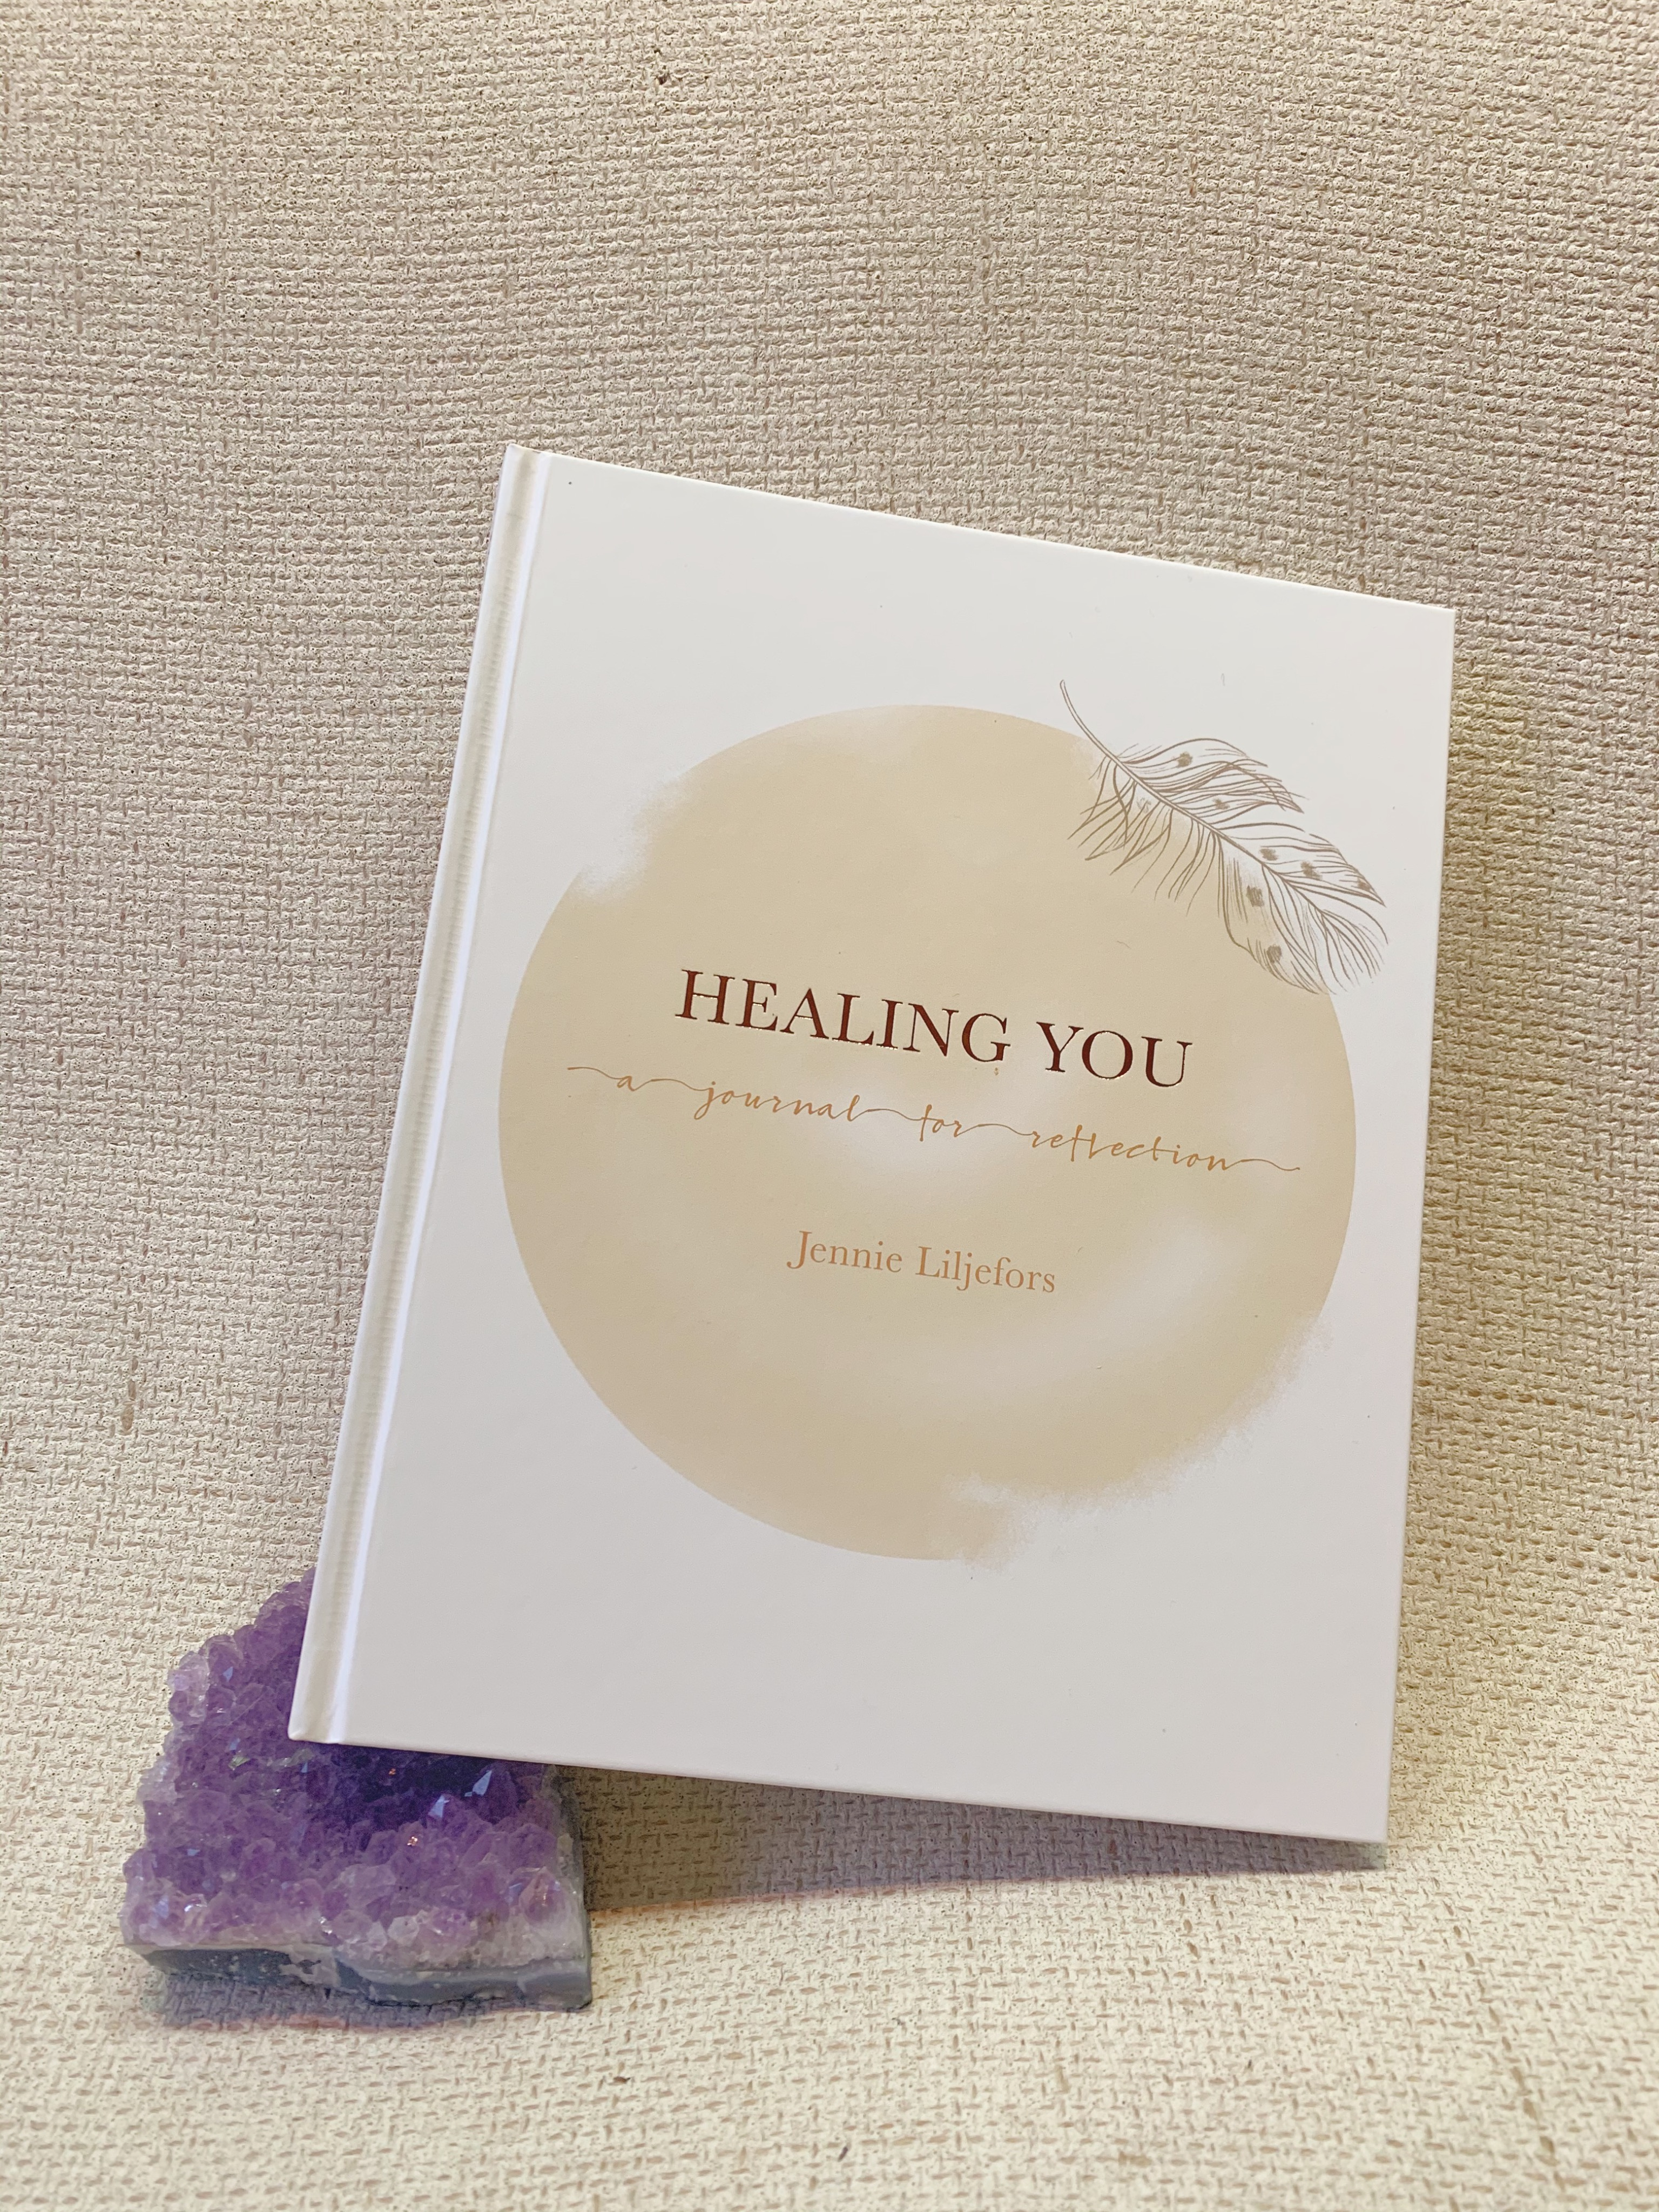 Healing You - A journal for reflection